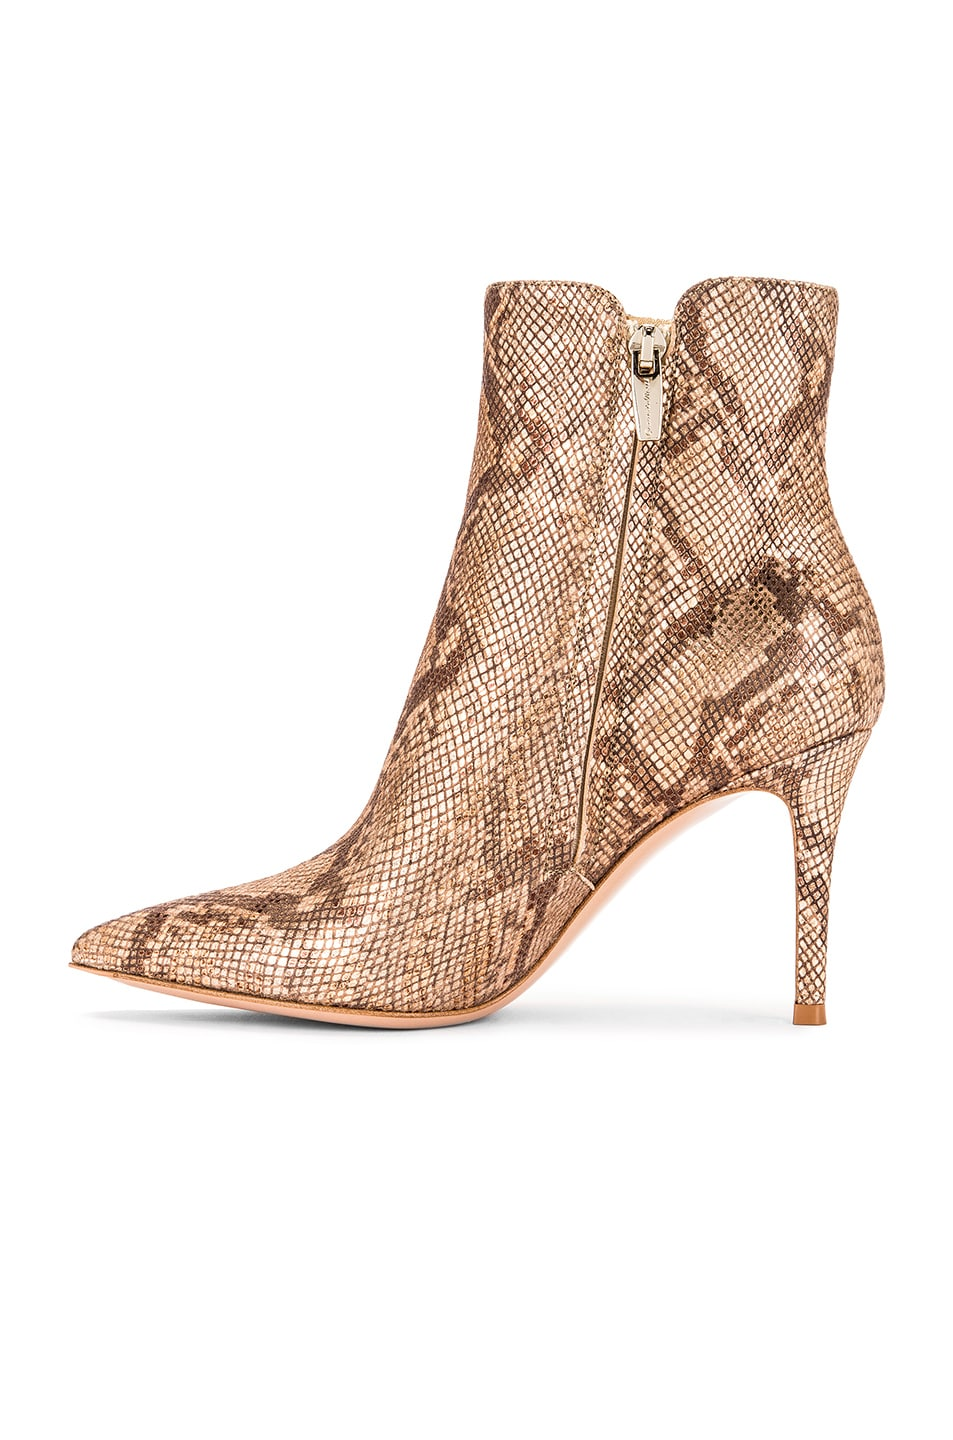 Image 5 of Gianvito Rossi Dallas Ankle Booties in Mekong